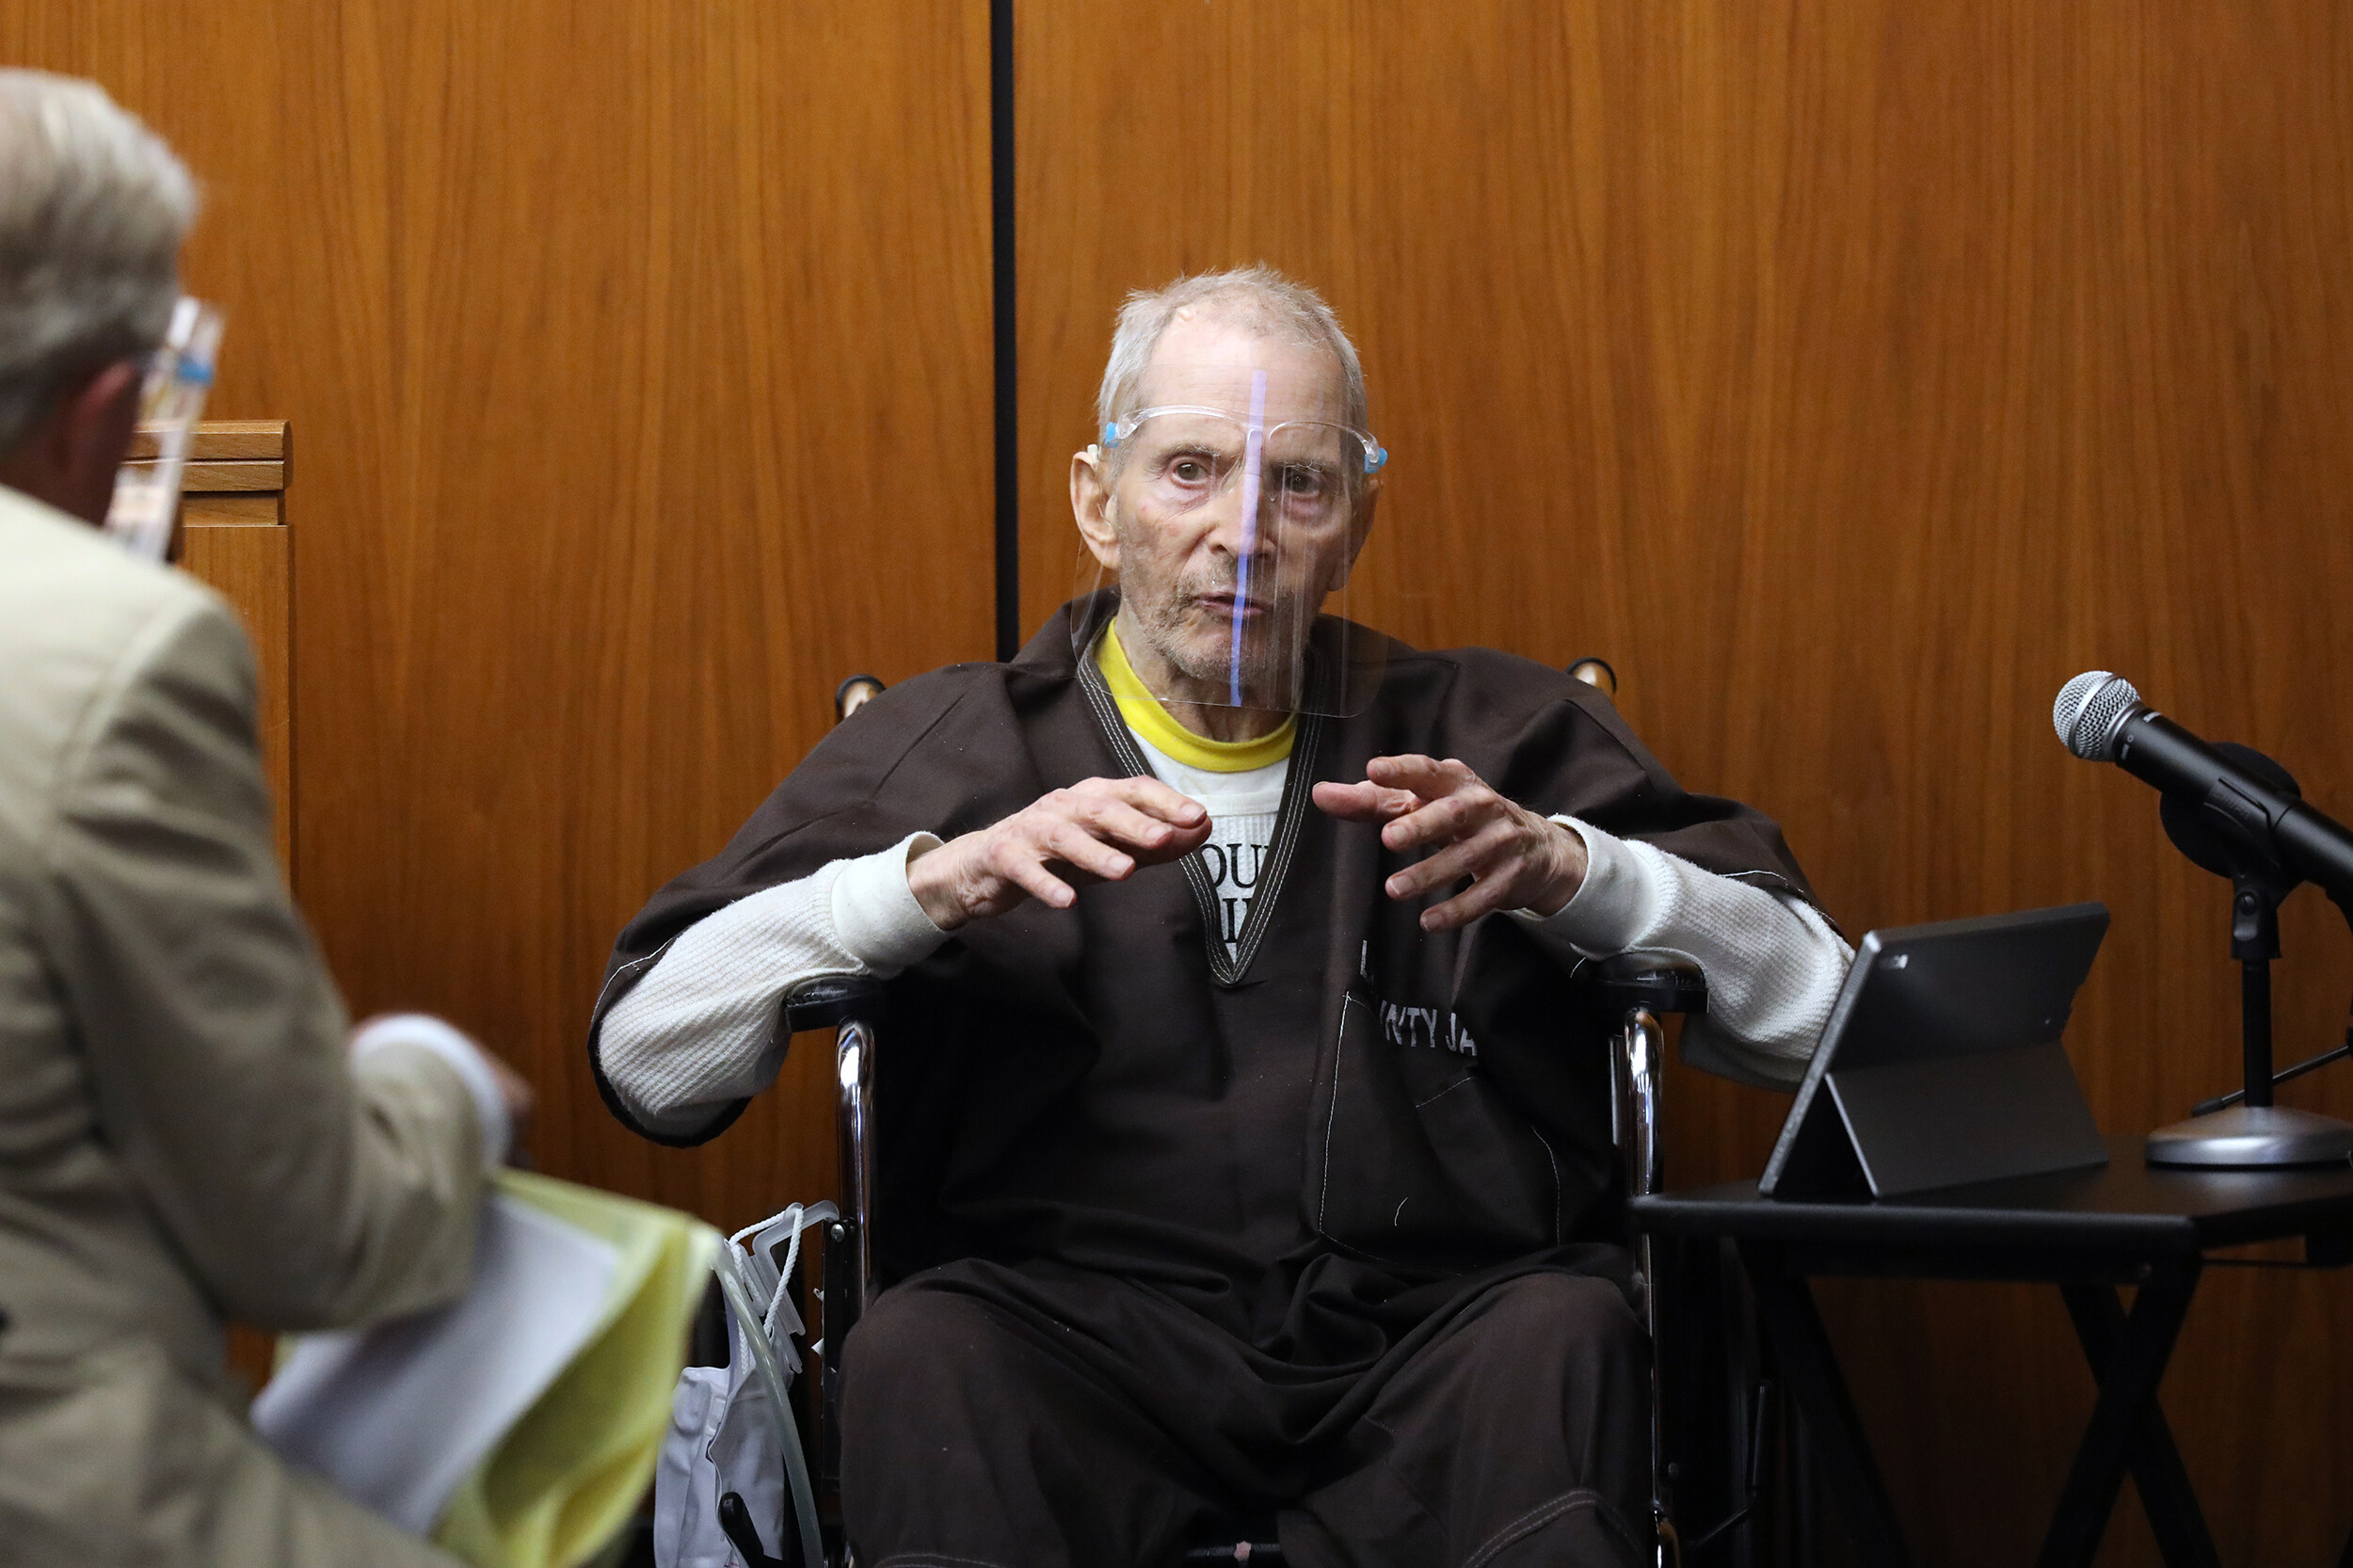 <i>Pool/Getty Images/FILE</i><br/>Robert Durst on the witness stand during his murder trial.